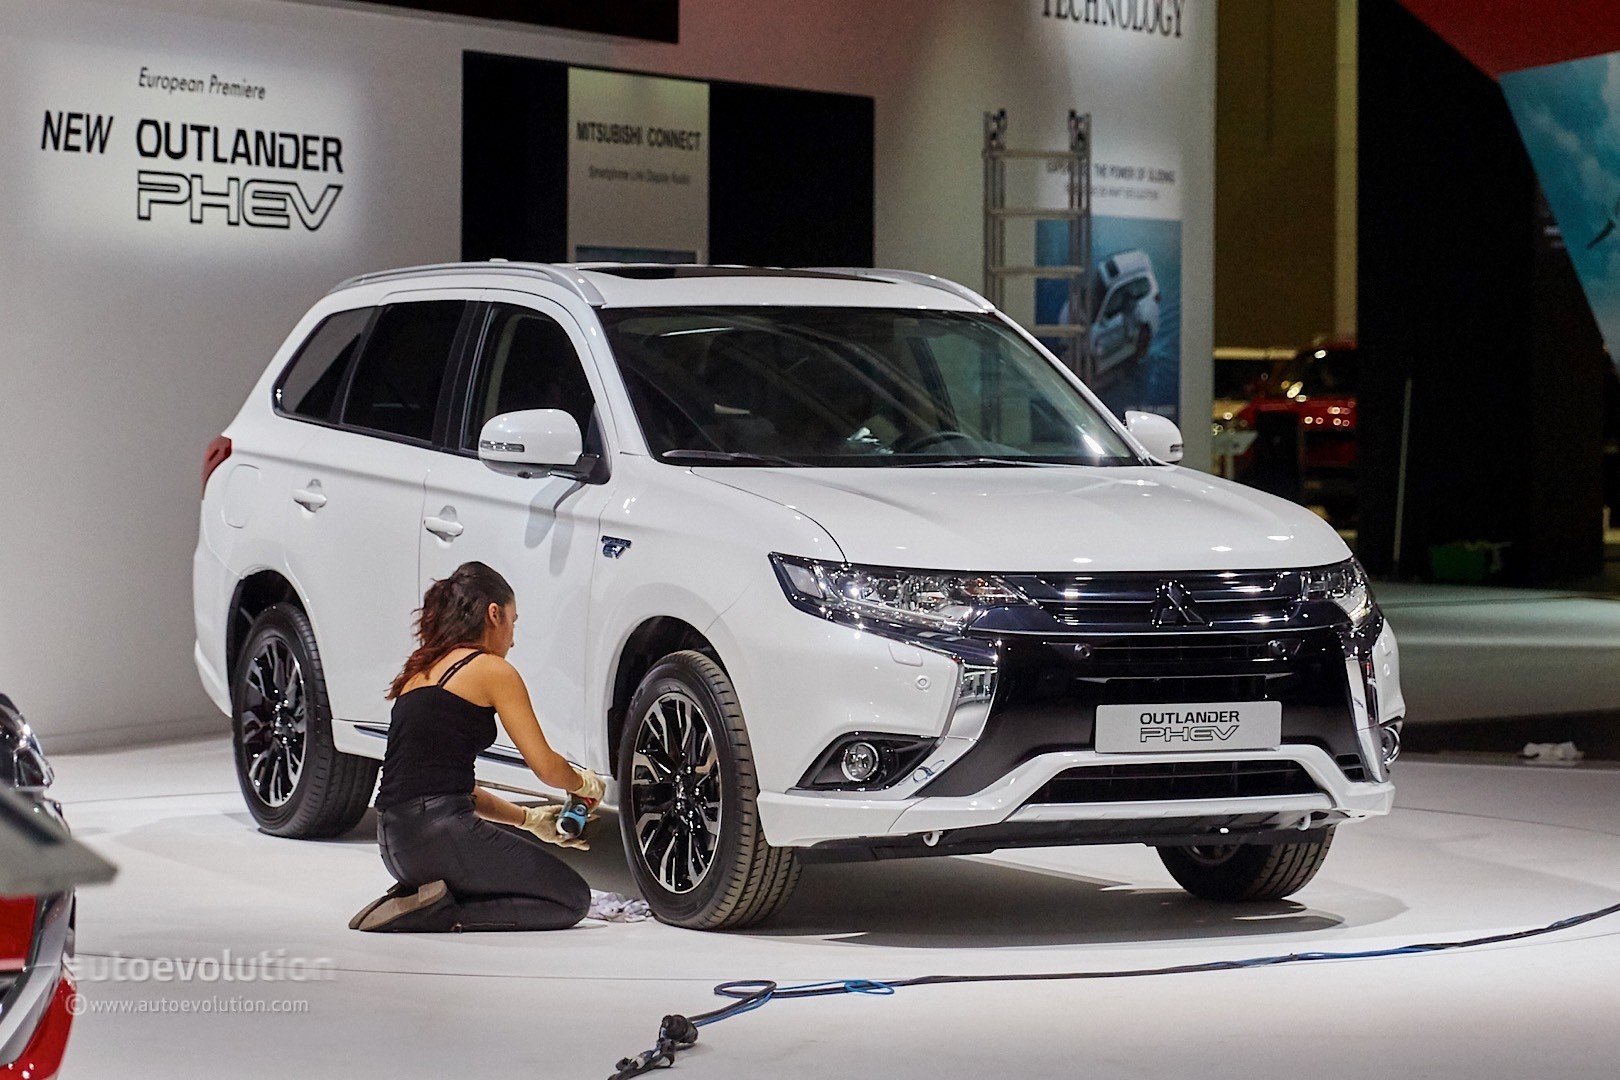 Mitsubishi All New Pajero Sport 2017 >> Mitsubishi Outlander PHEV Facelift Revealed at Frankfurt ...